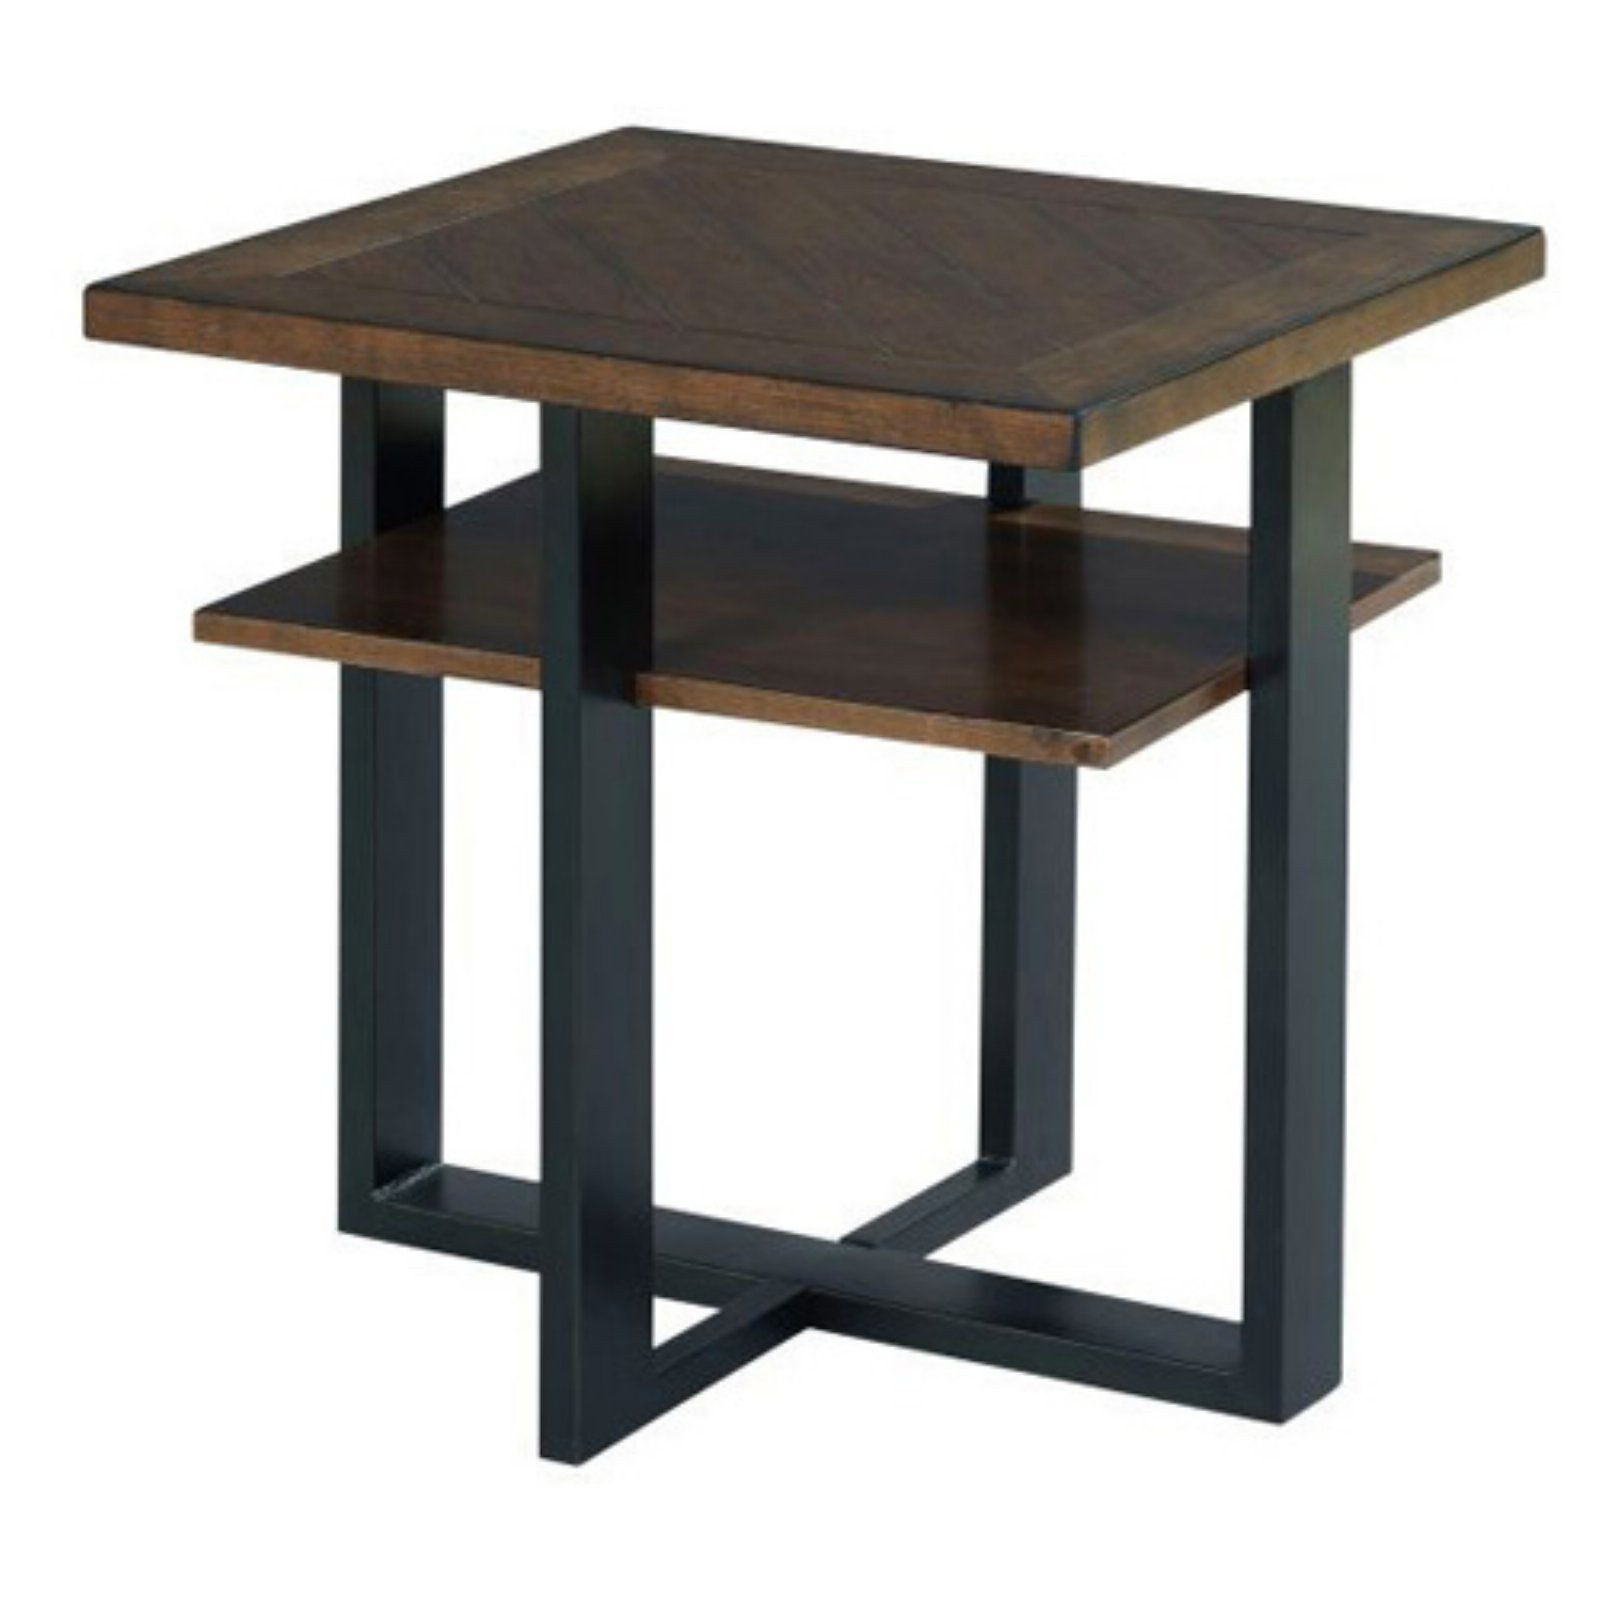 Hammary Furniture Co Franklin Rectangular Accent Table Hammary